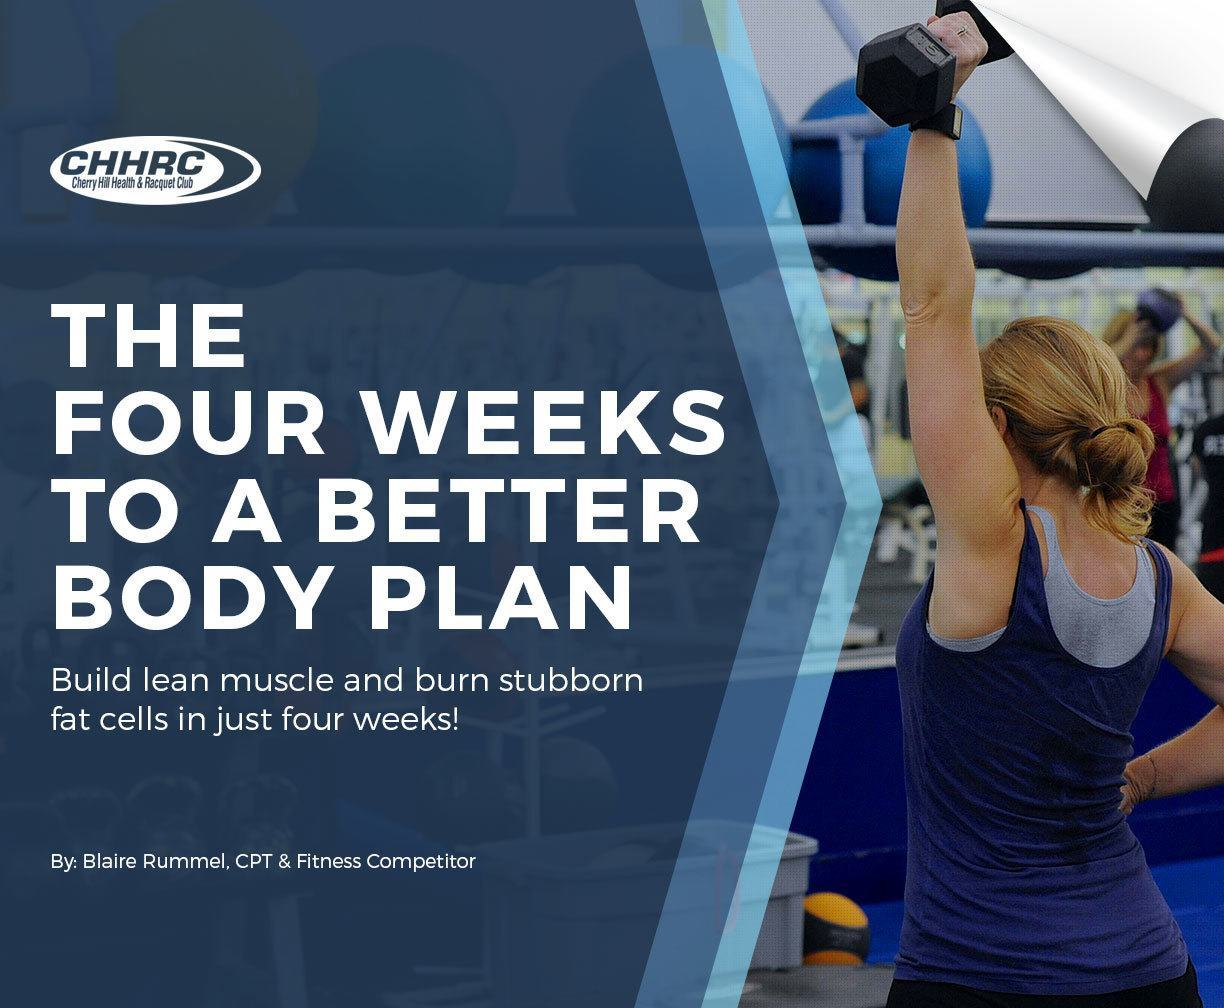 The four weeks to a better body plan chhrc